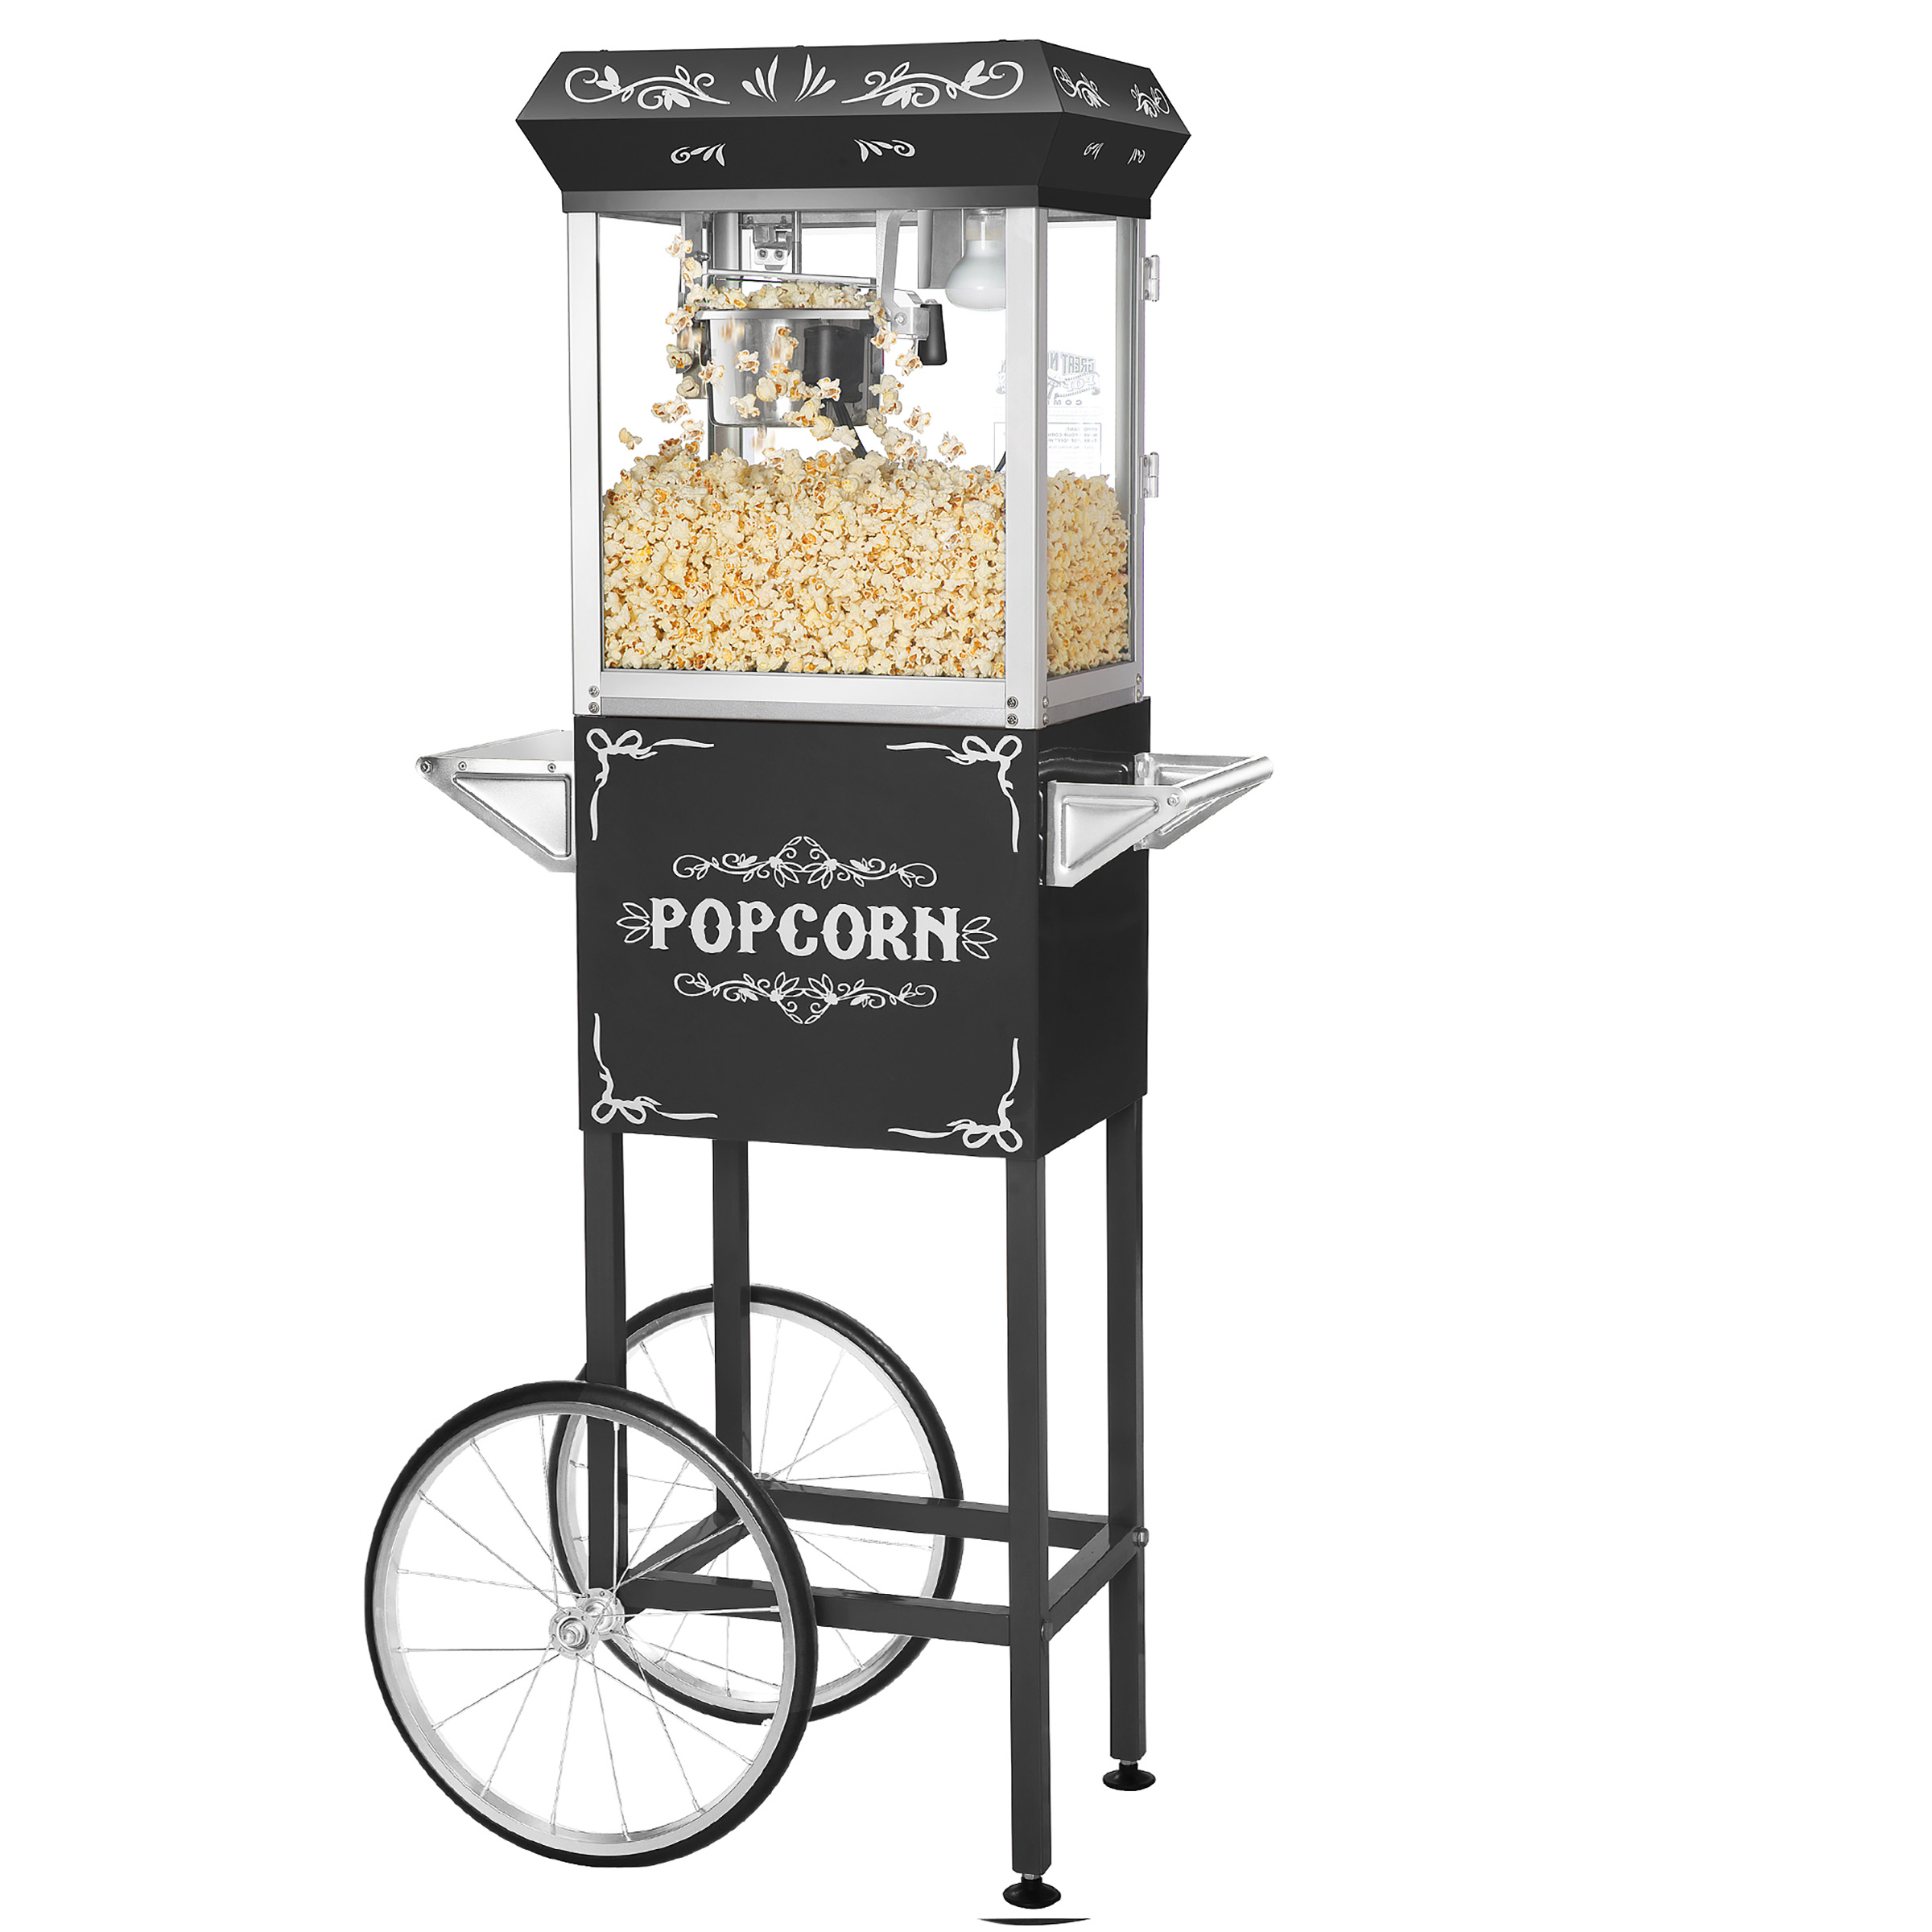 Foundation Top Popcorn Popper Machine, 6 Ounce by Great Northern Popcorn